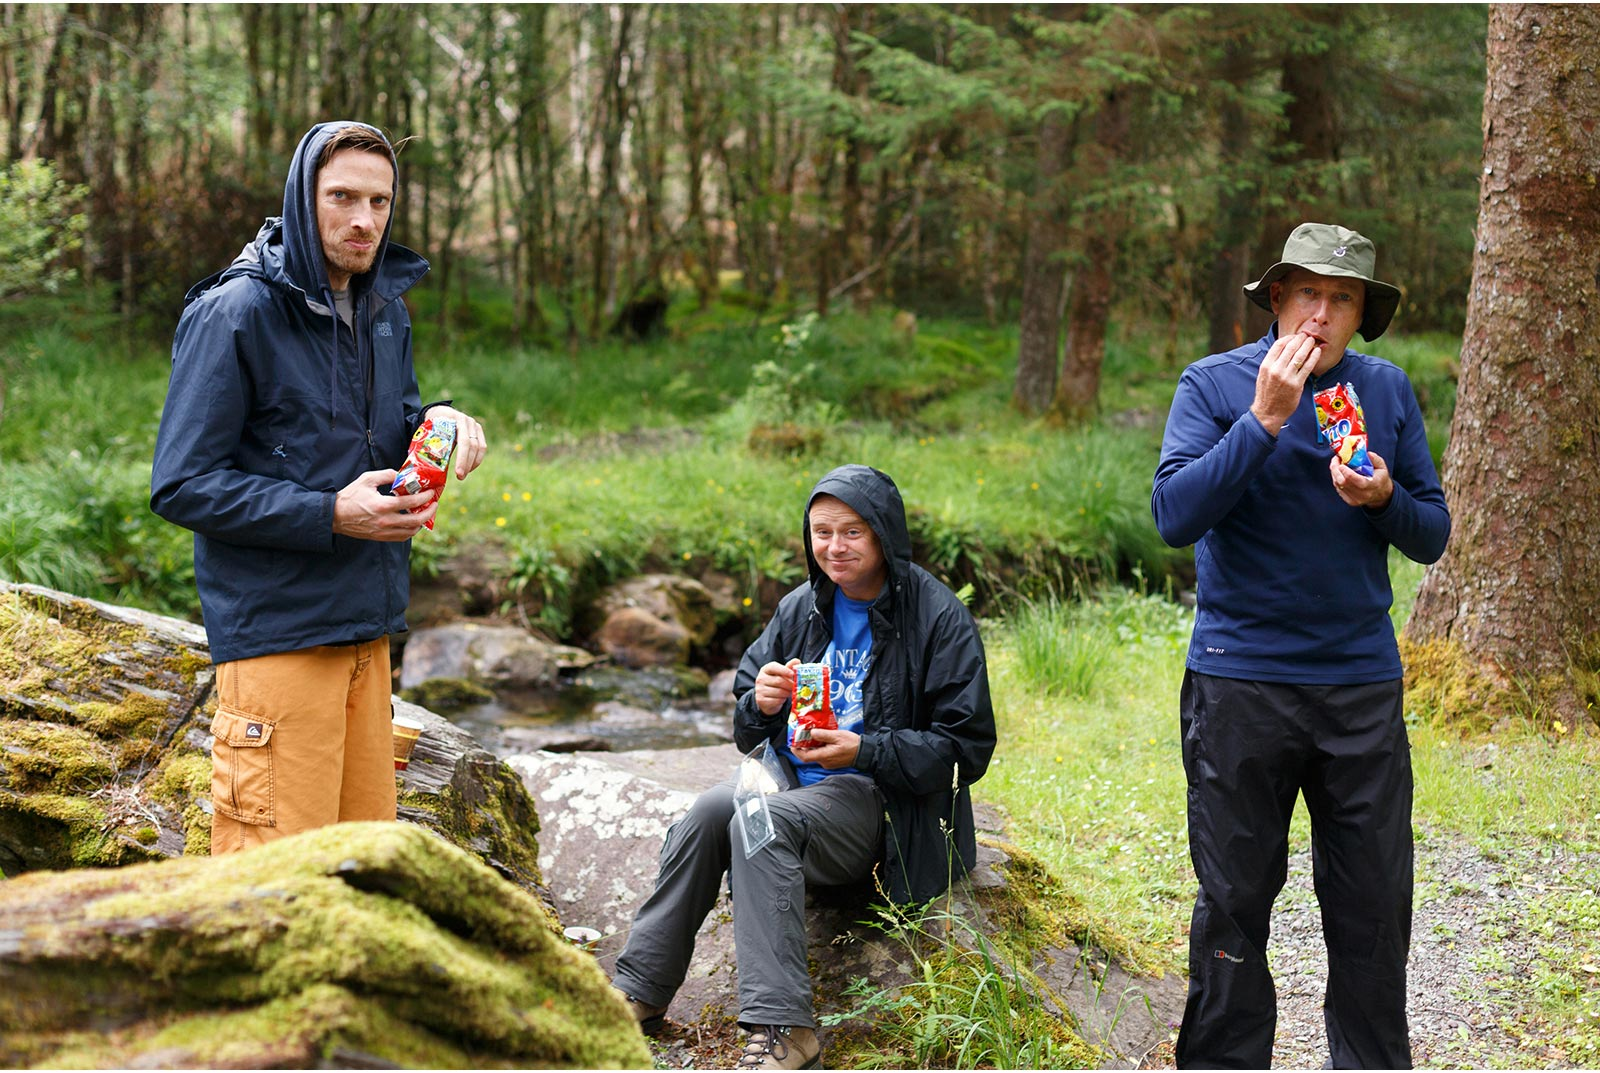 3 guys eating packets of tayto crisps in the rain. A typical Irish picnic scene.